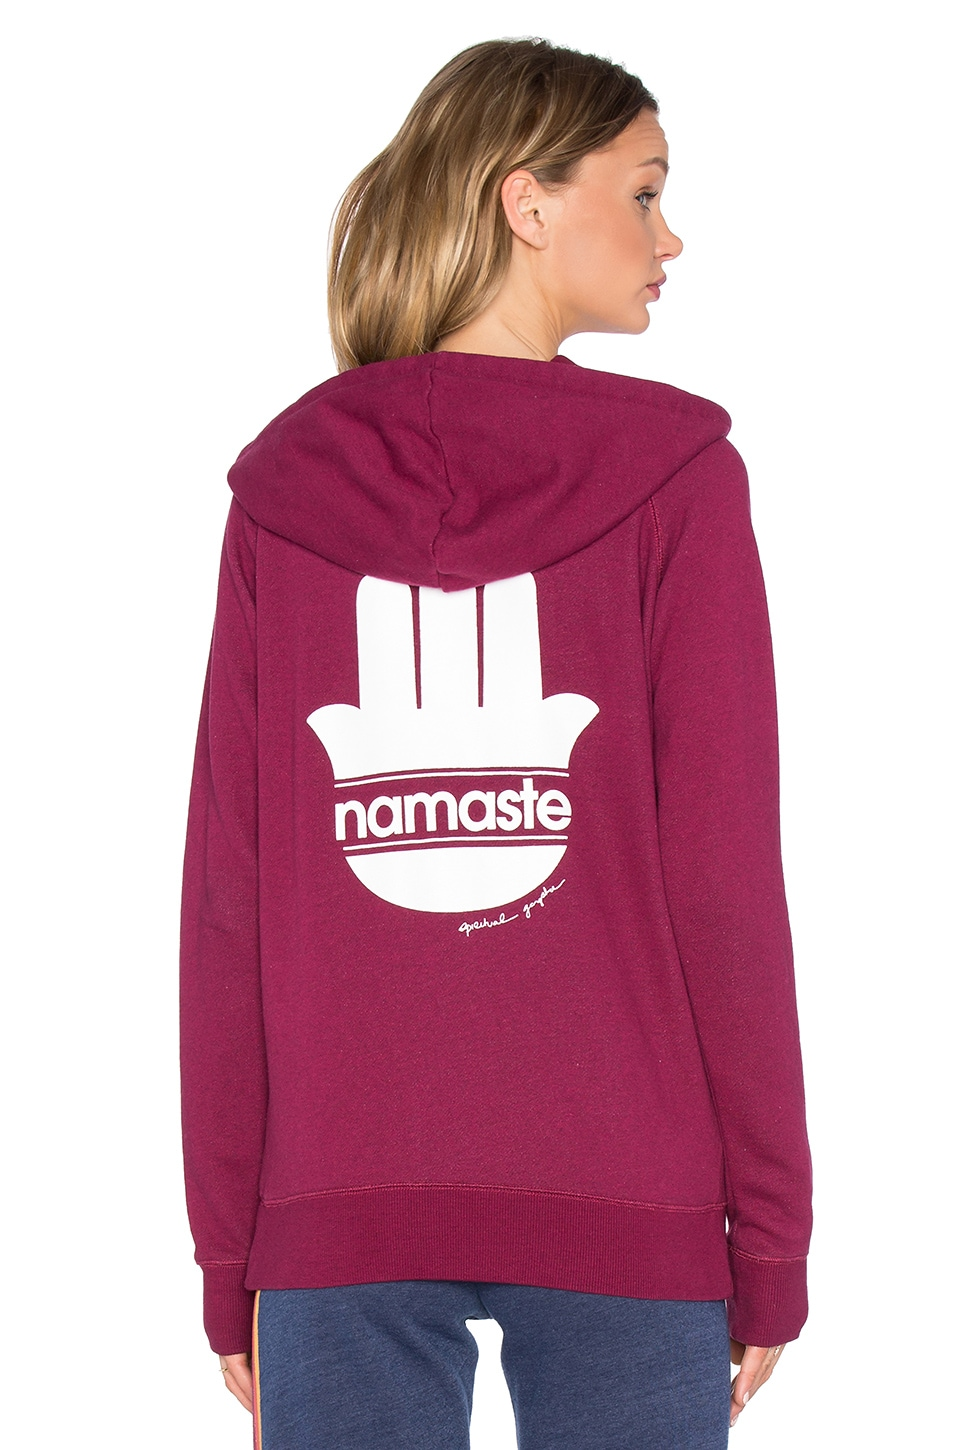 Namaste Stripes Zip Hoodie by Spiritual Gangster